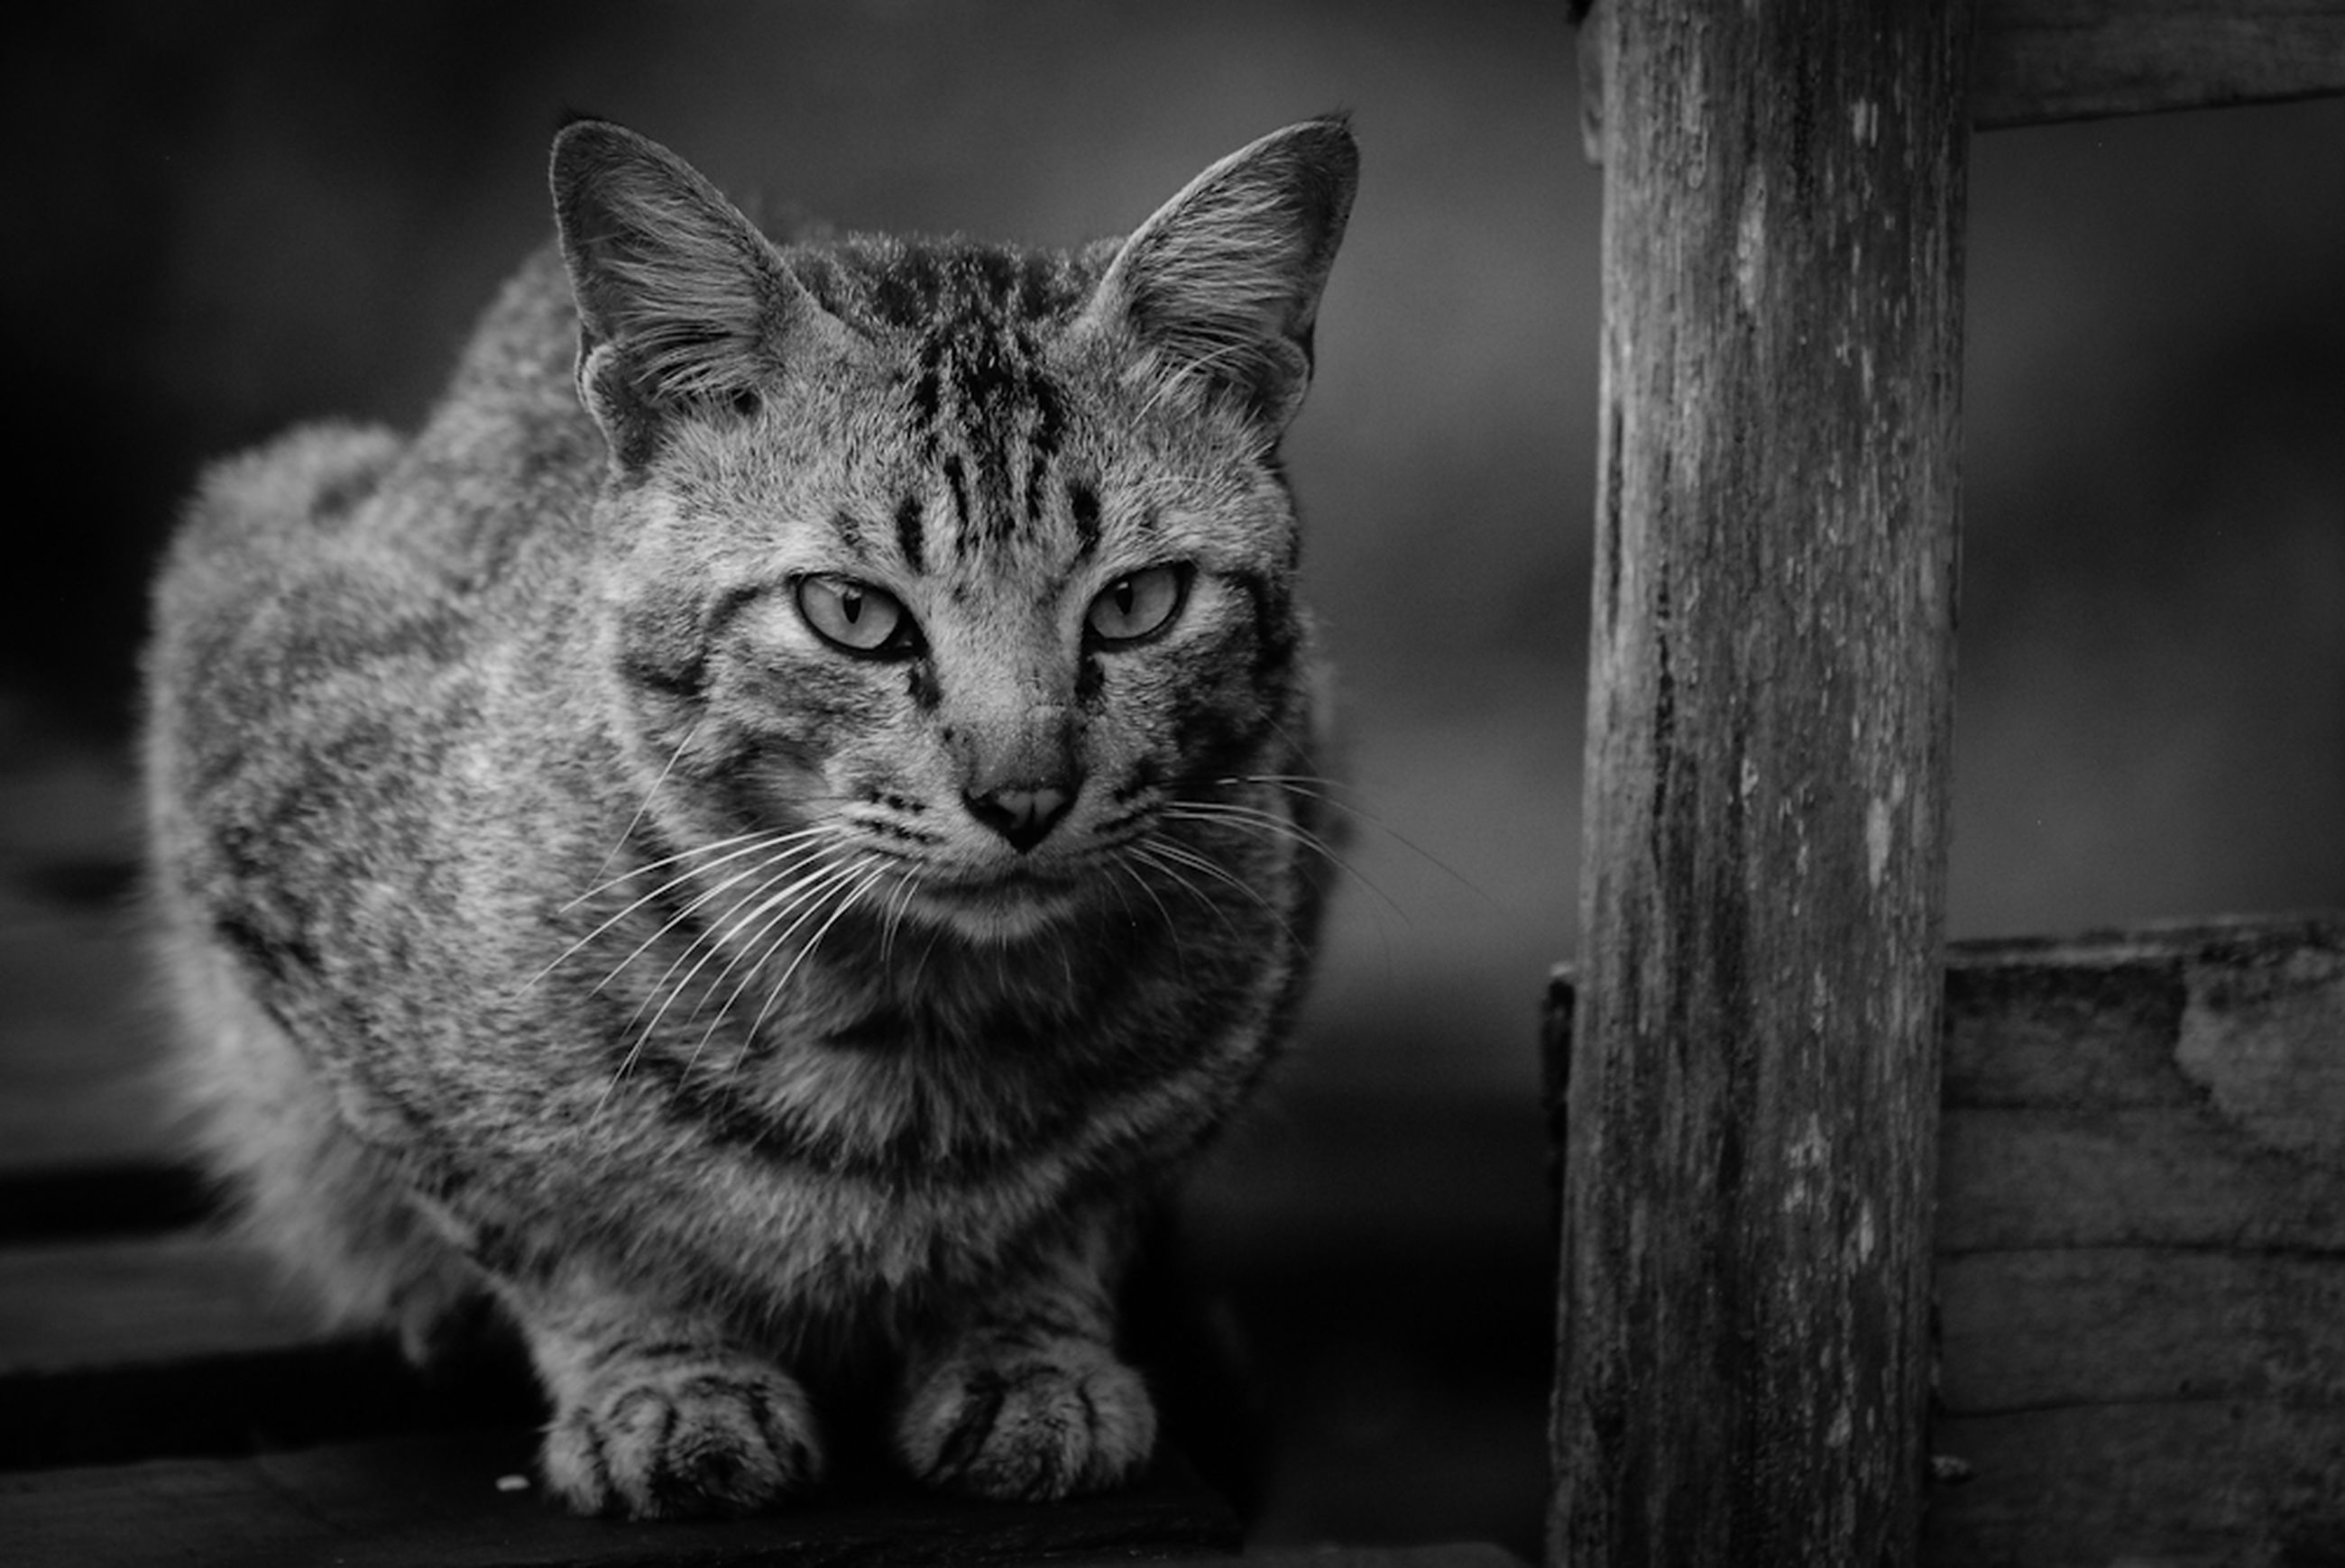 domestic cat, animal themes, one animal, cat, mammal, feline, pets, whisker, domestic animals, portrait, looking at camera, focus on foreground, close-up, wood - material, sitting, animal head, front view, alertness, staring